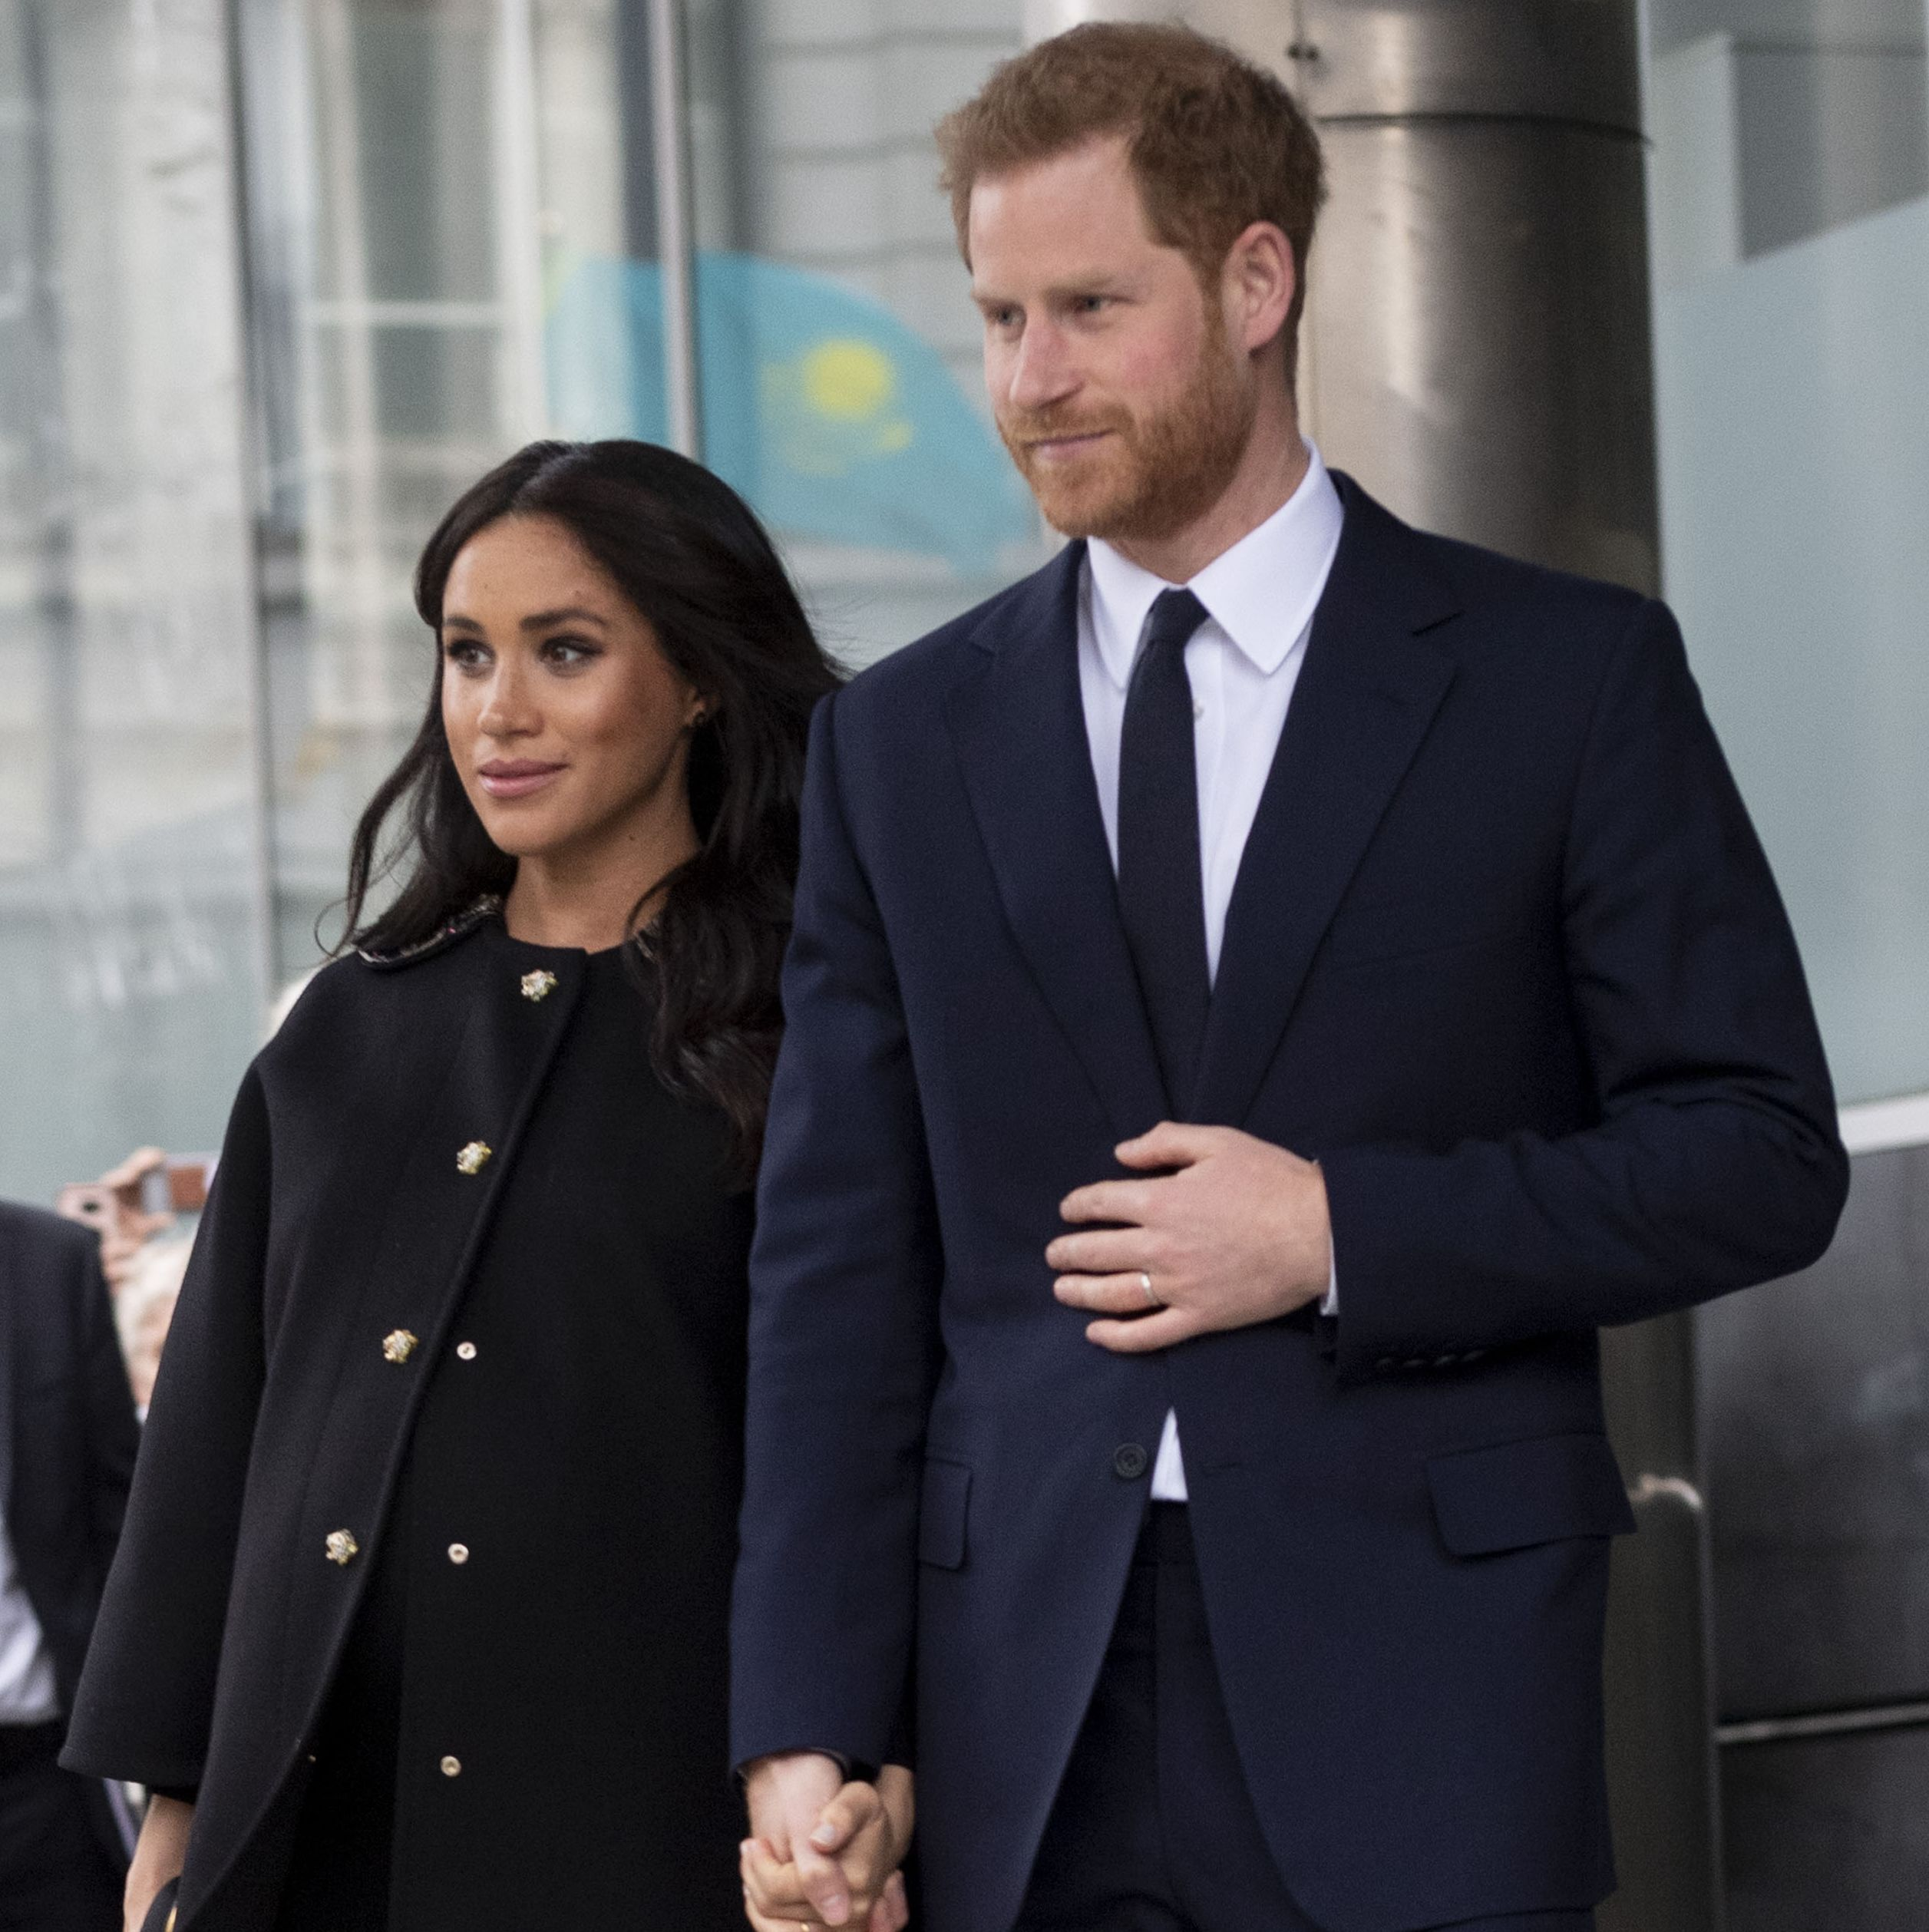 Meghan Markle and Prince Harry Visited New Zealand House to Pay Tribute to the Victims of the Christchurch Terrorist Attack